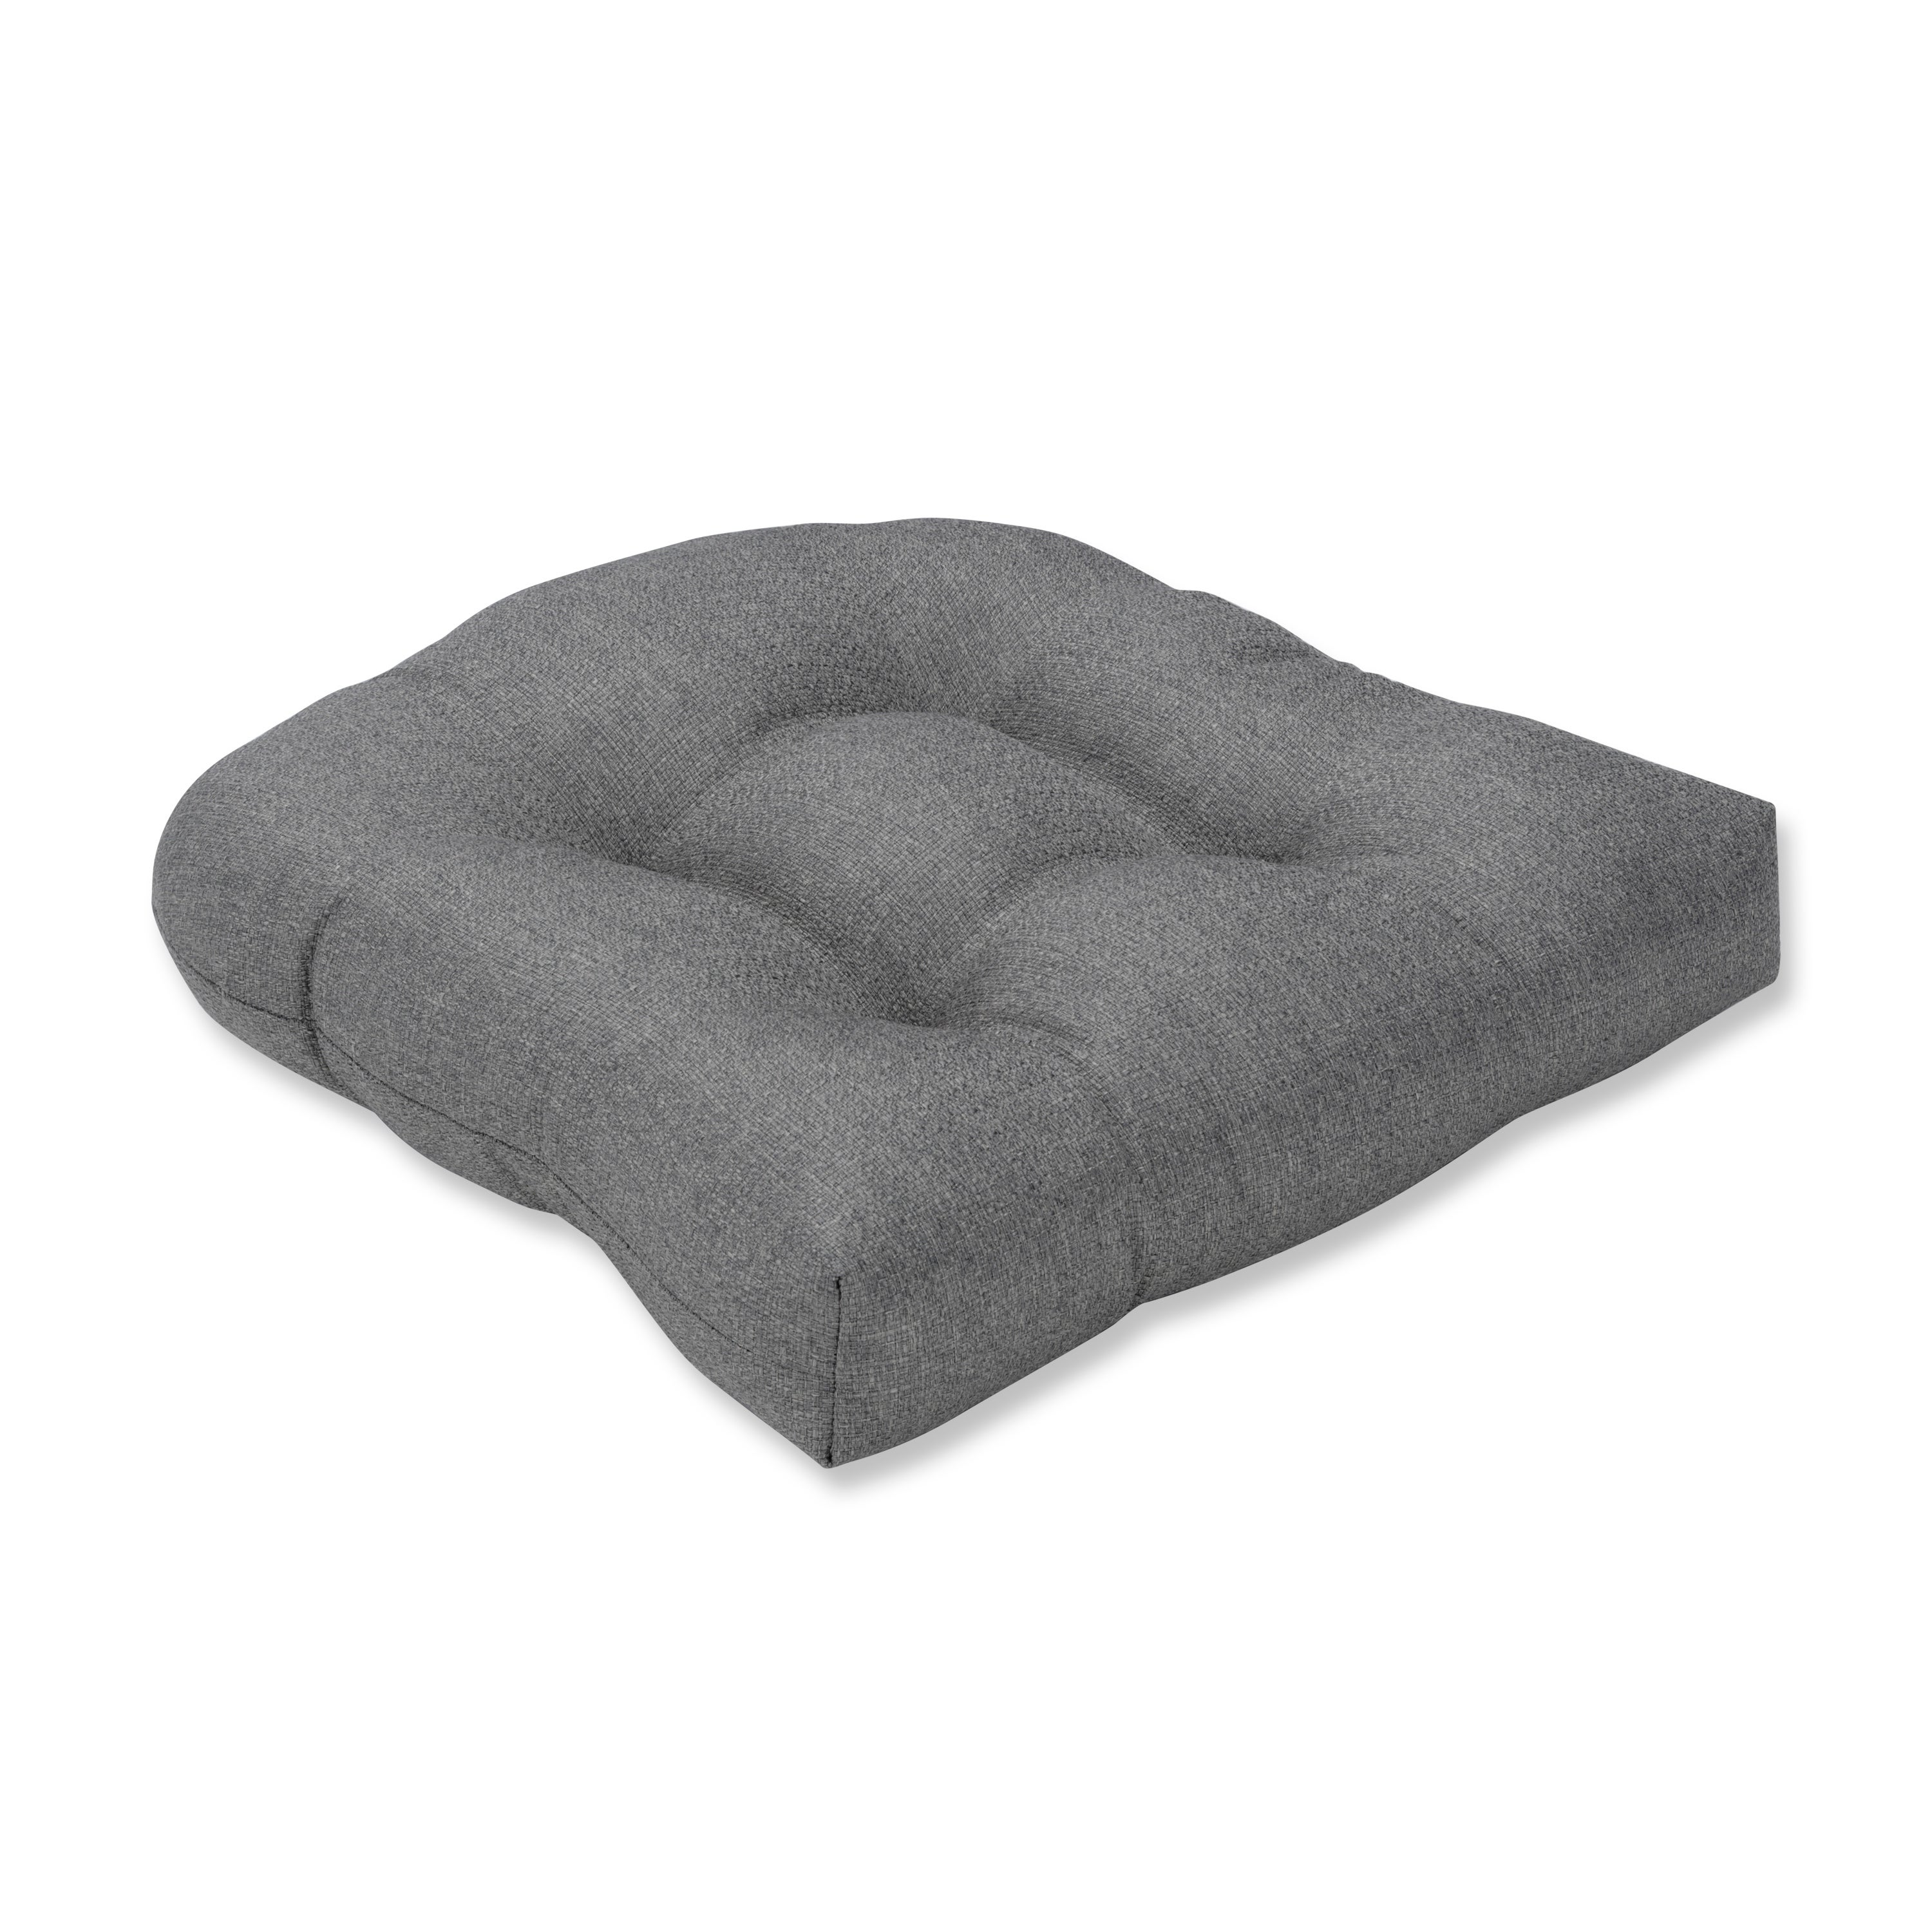 Pillow Perfect Indoor Sonoma Pewter Wicker Seat Cushion, 19 in. L X 19 in. W X 5 in. D (N/A - Grey - Cotton)